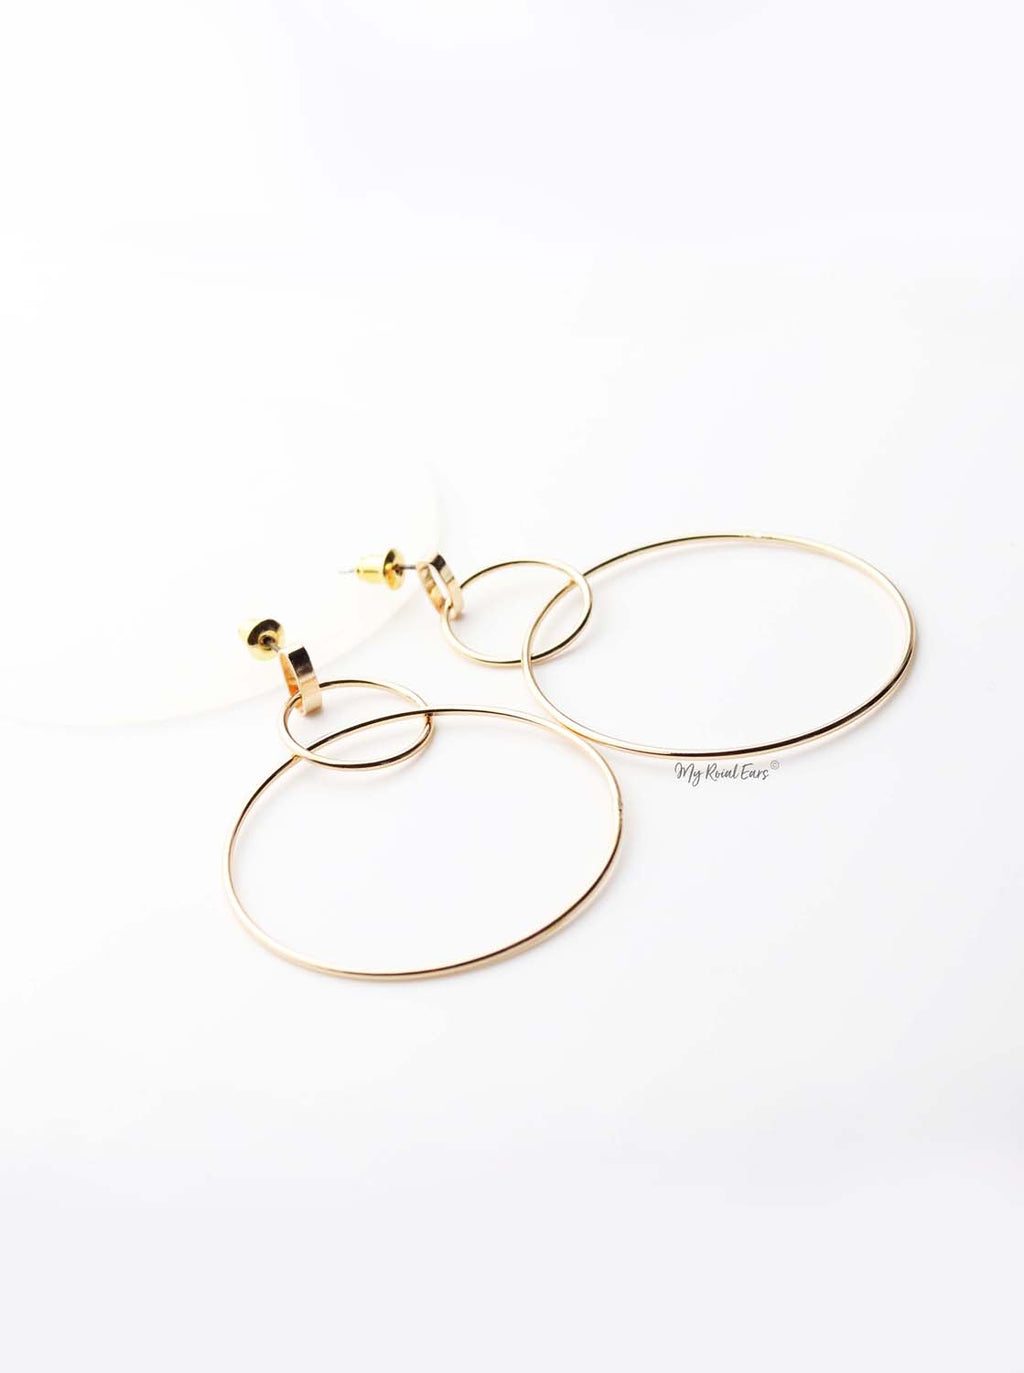 Penelope- gold plated thin hoops earrings - My Roial Ears LTD